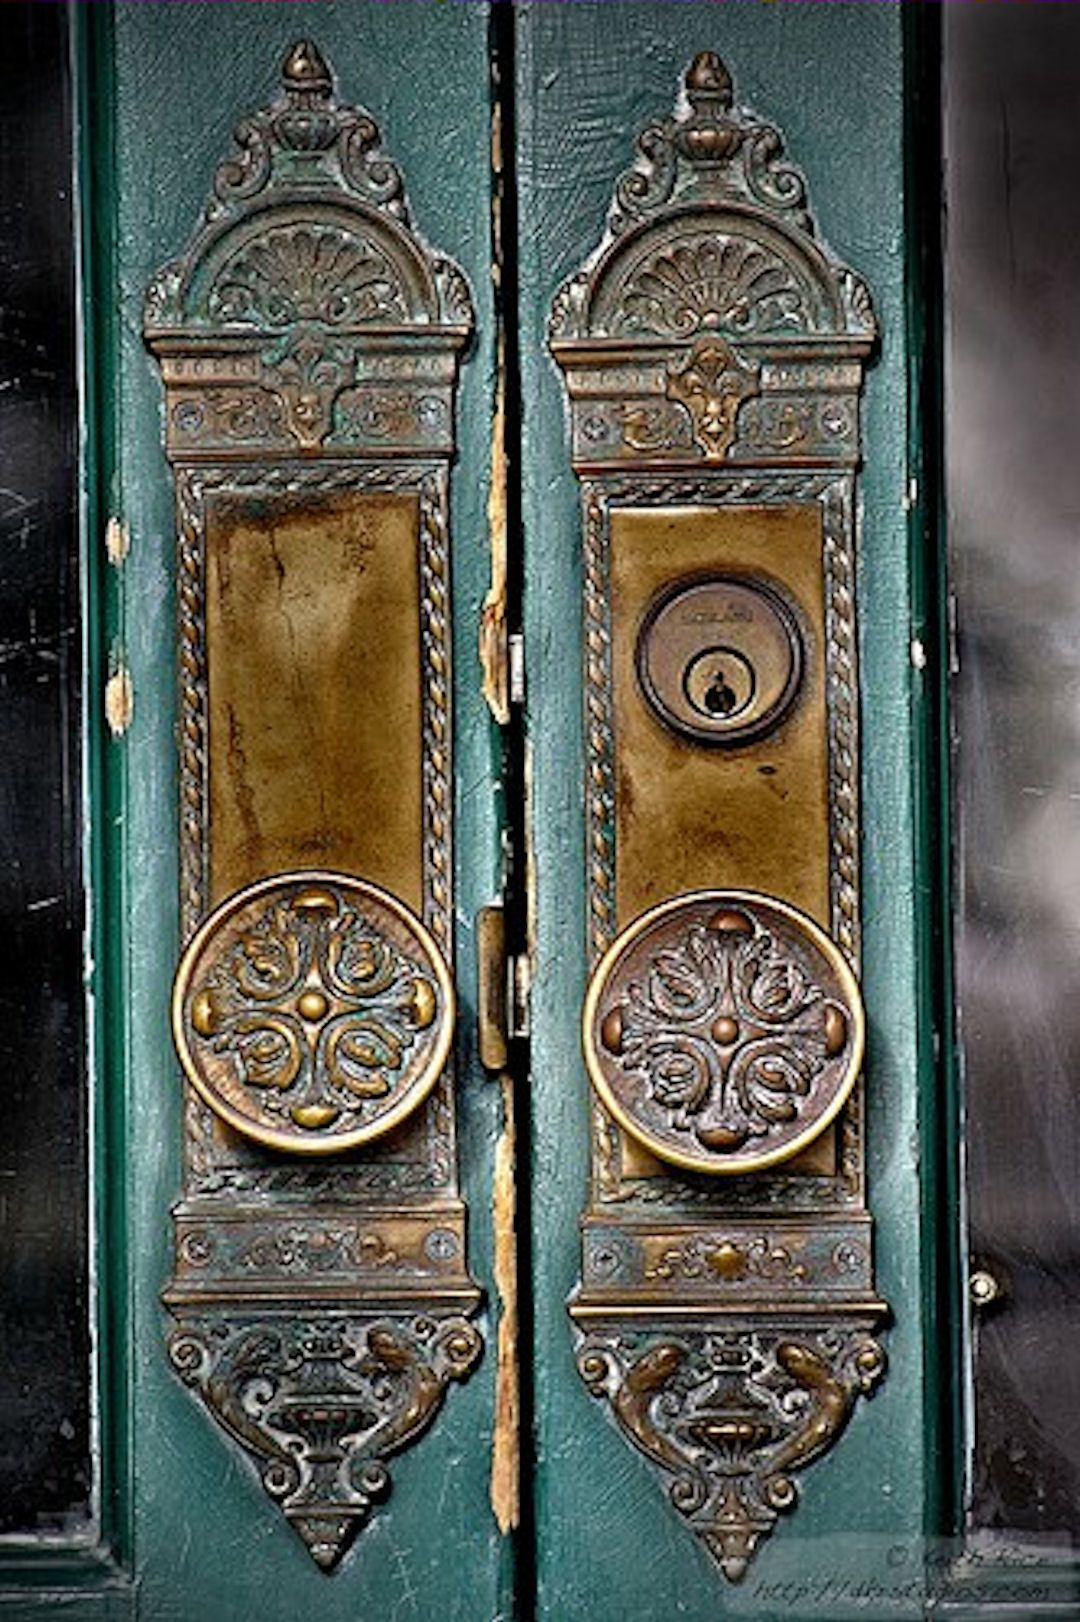 Old world charm my style pinterest - Old fashioned interior door locks ...